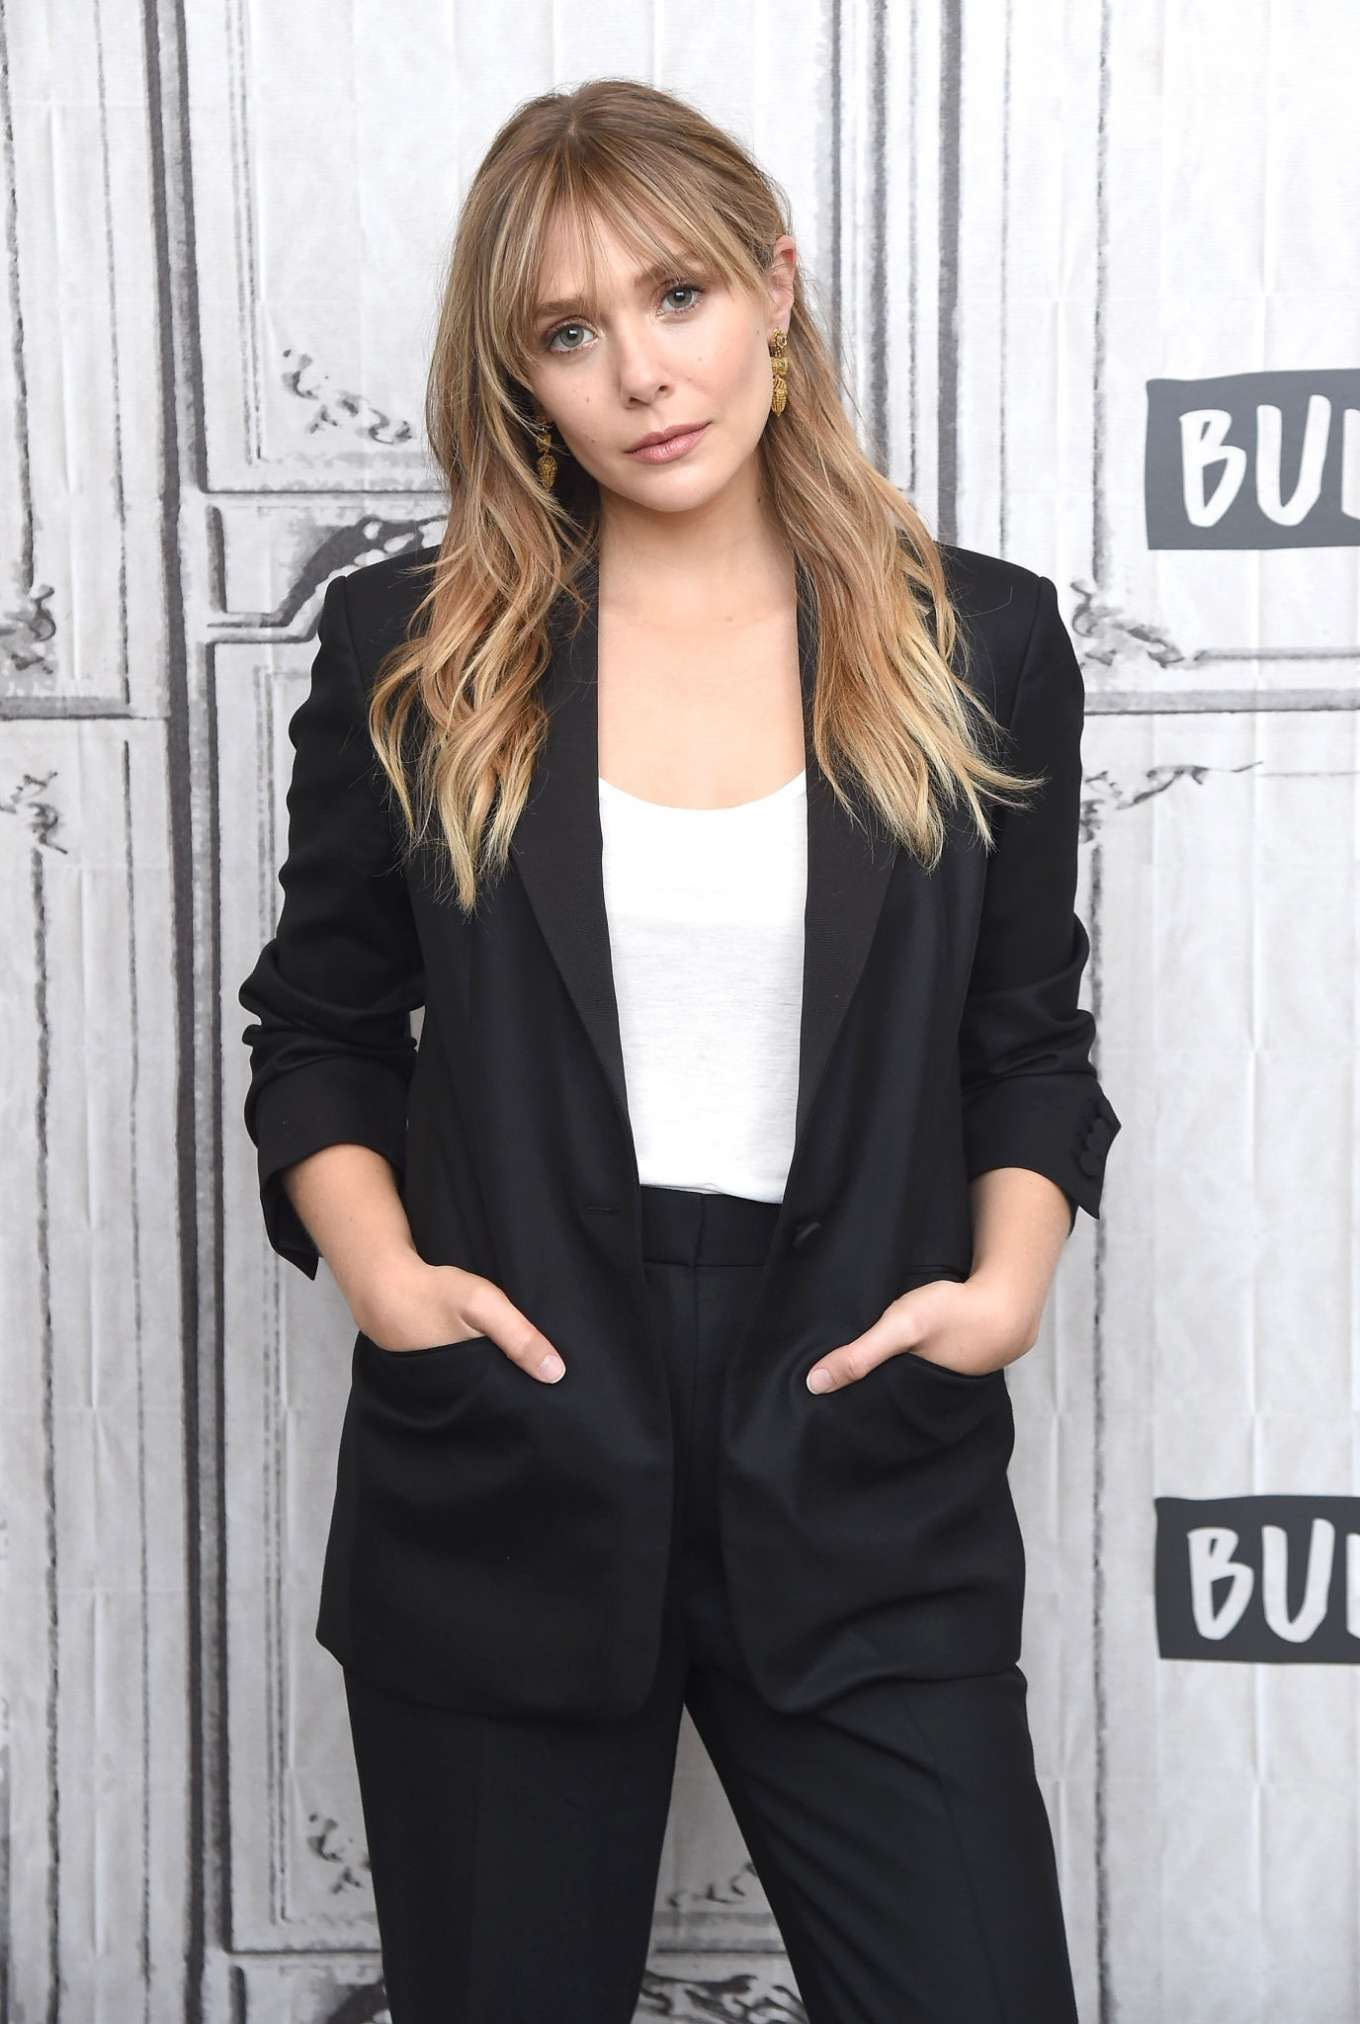 Elizabeth Olsen - On AOL Build in NYC